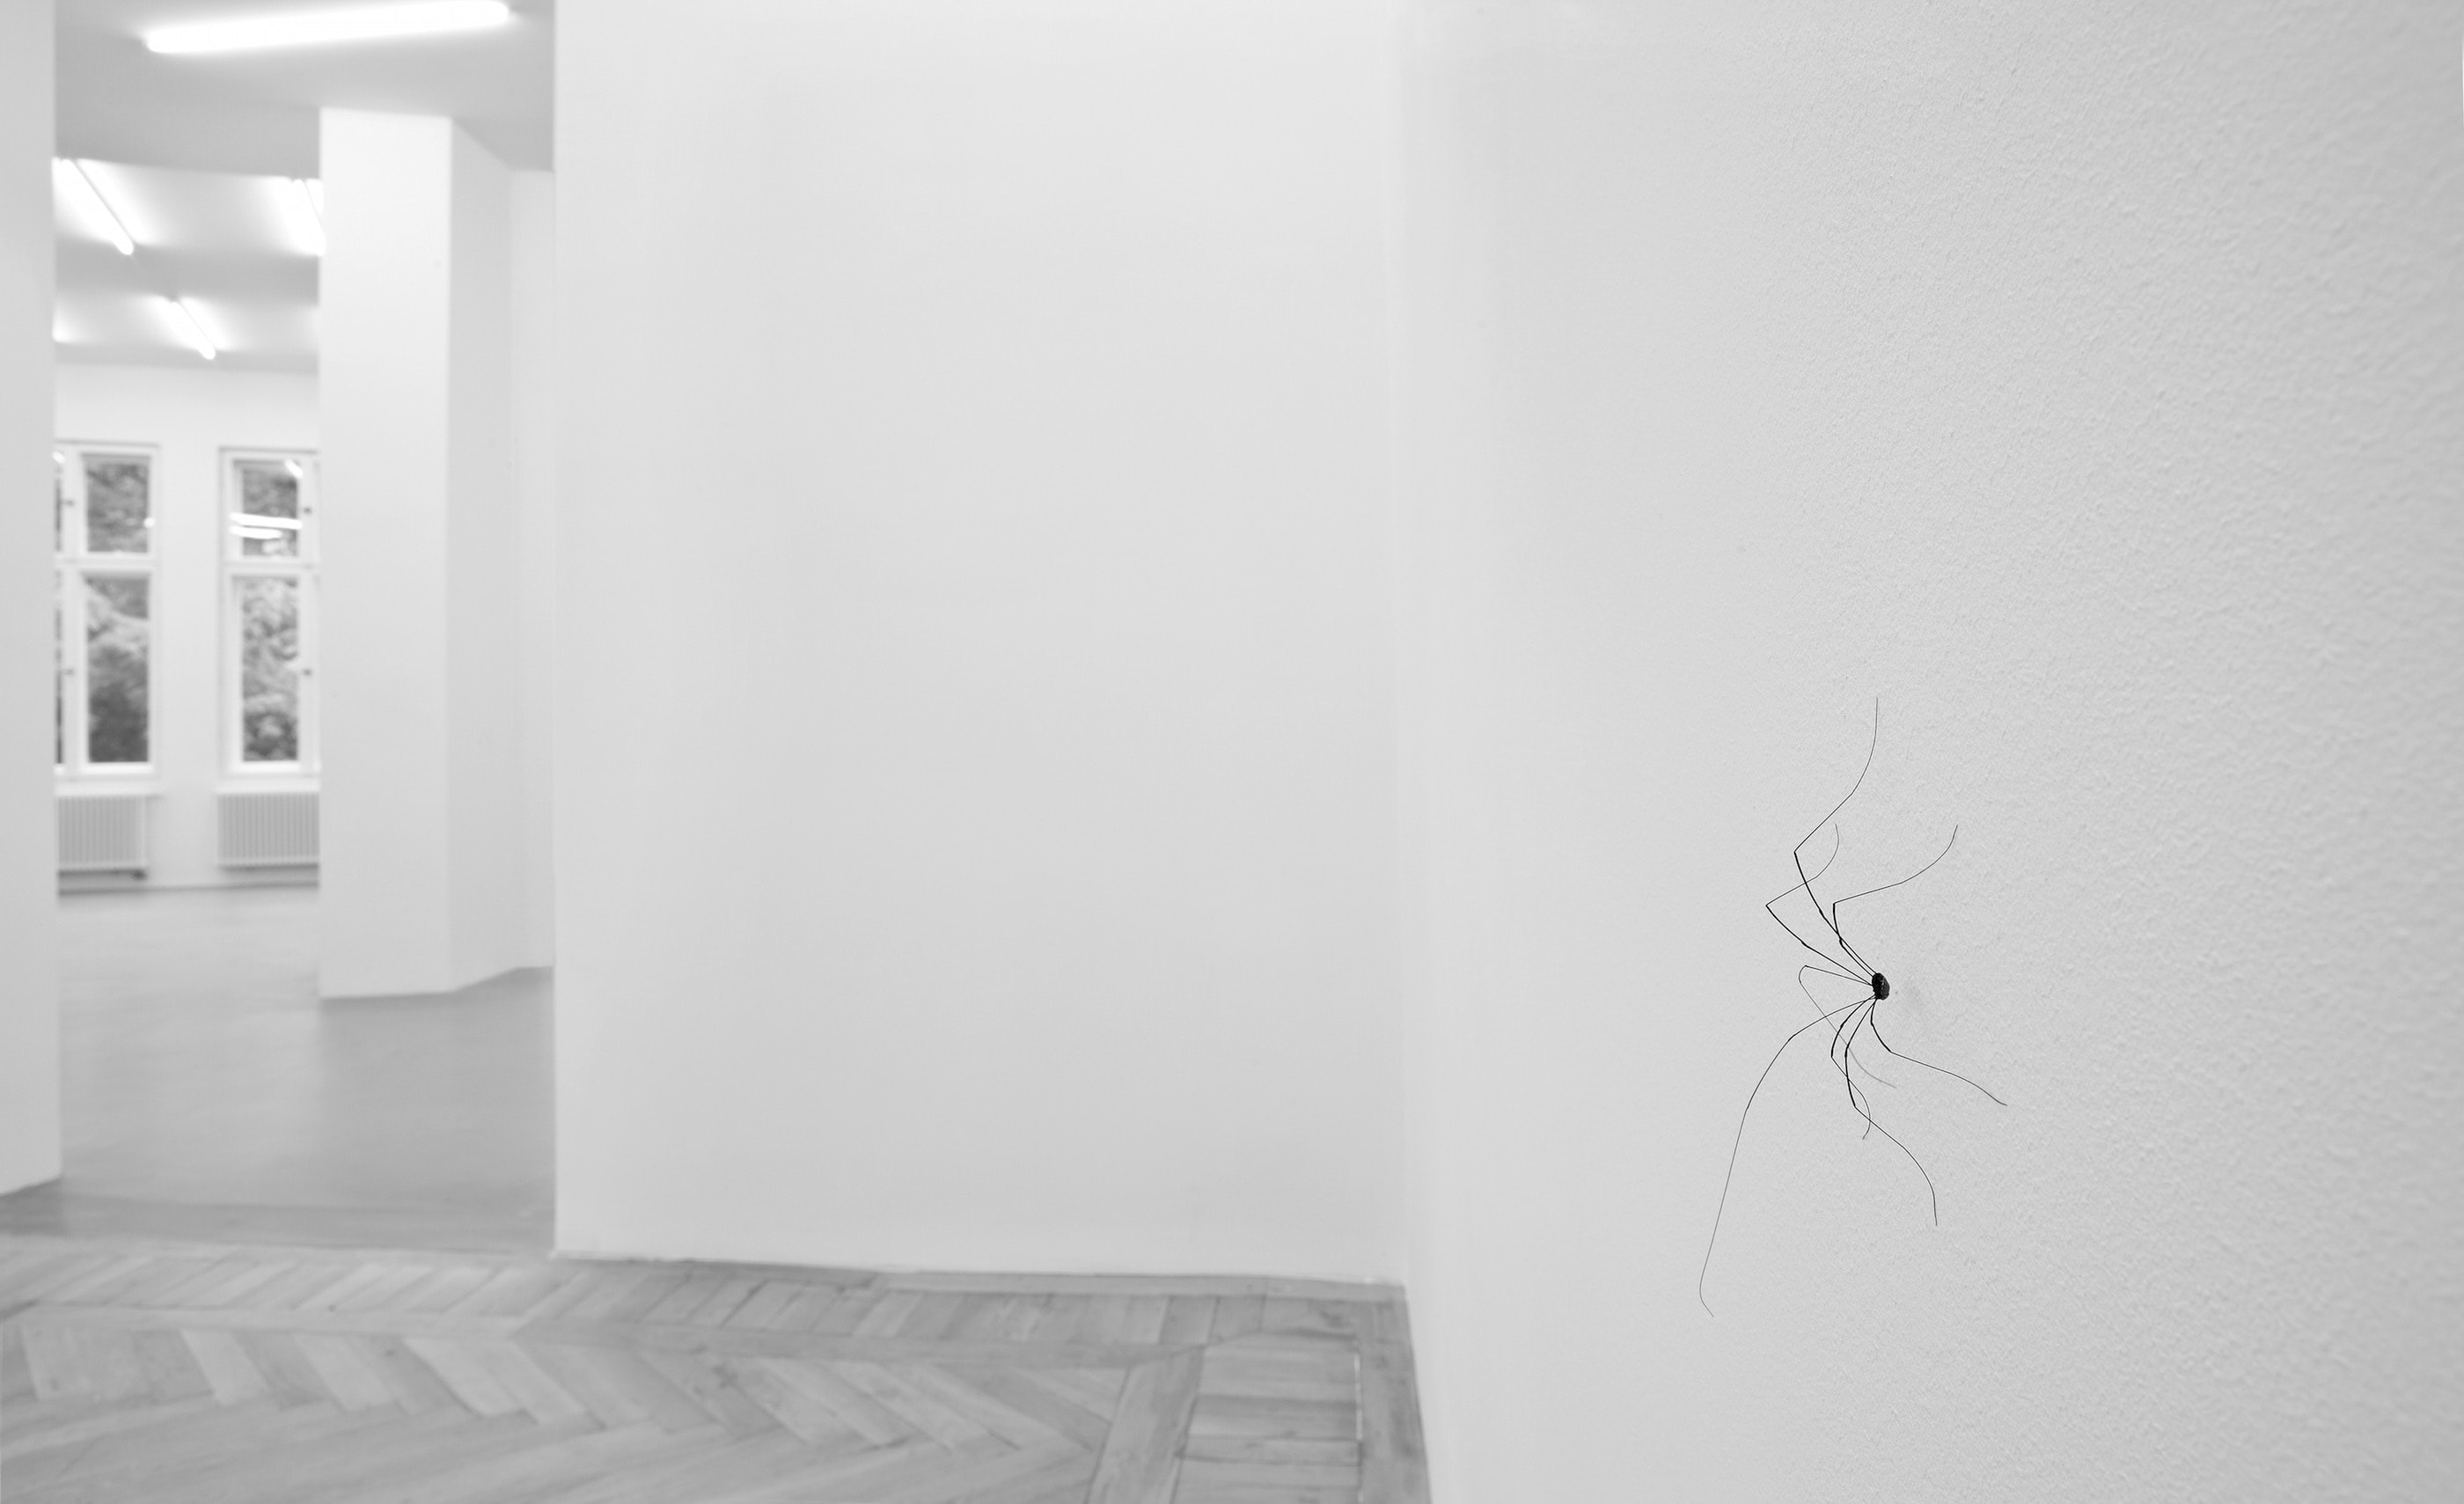 Grey Room Abstract Habitats Installations Of Coexistence And